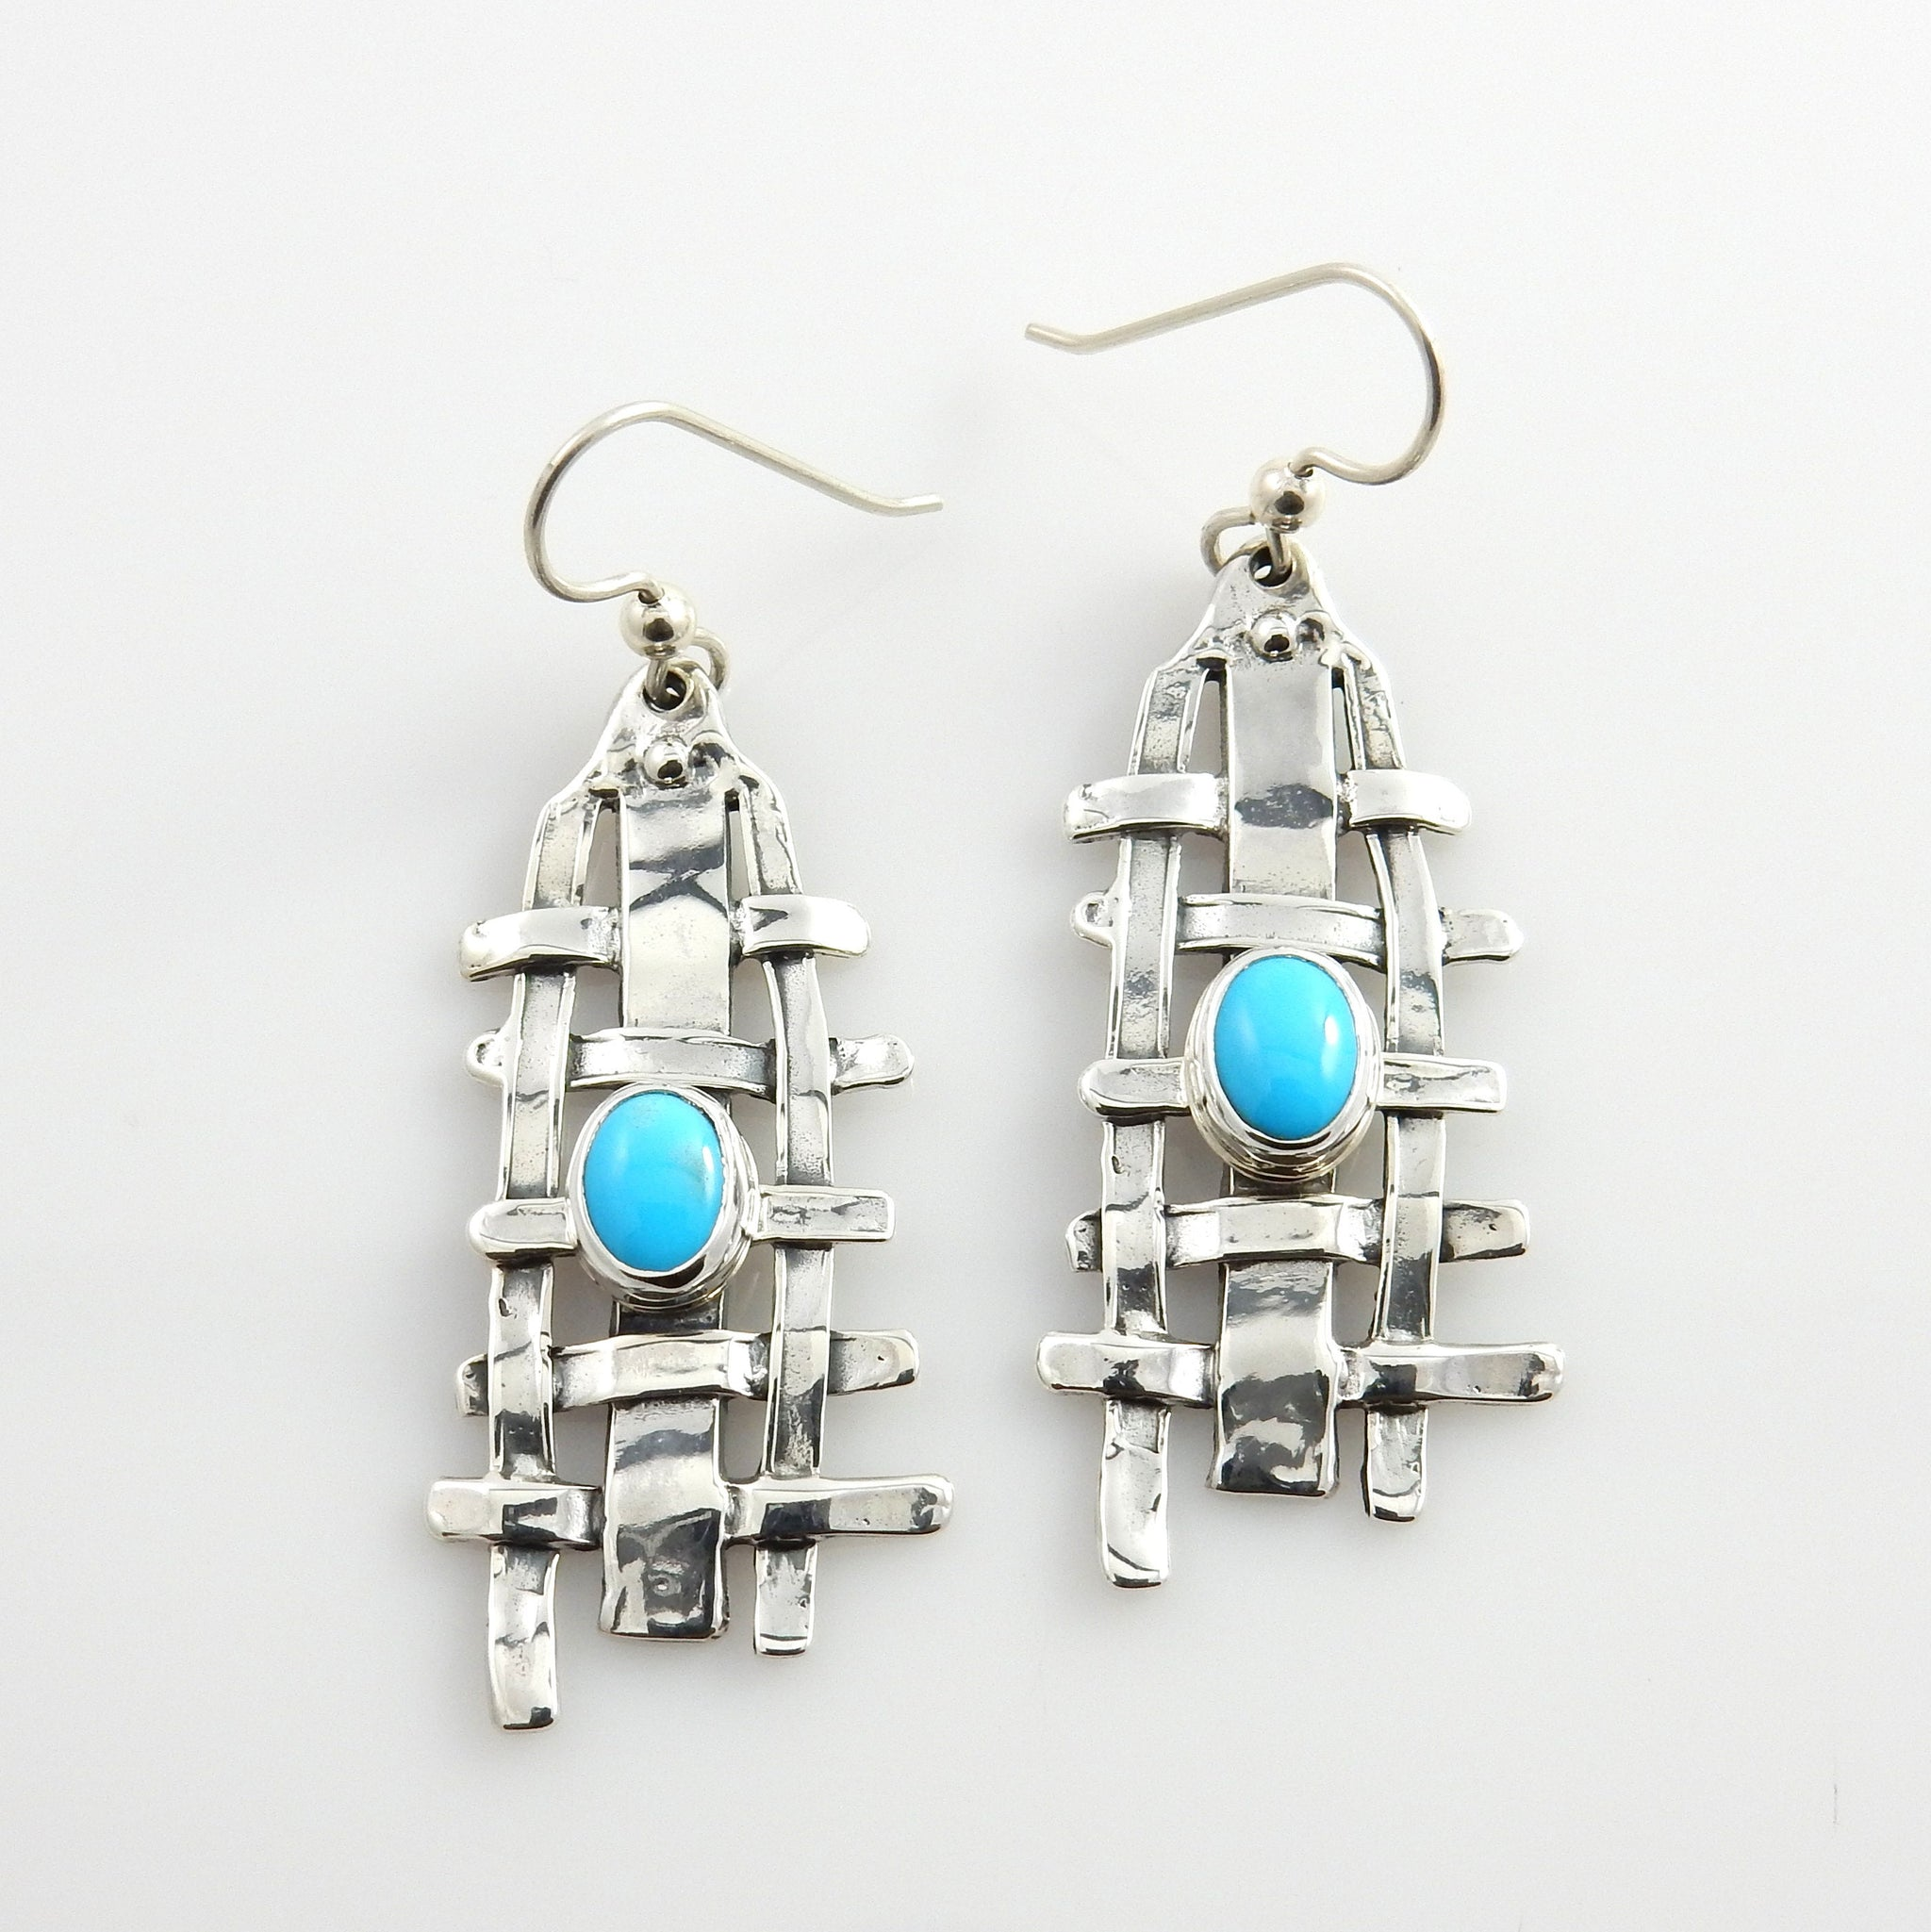 Stylish Handmade Silver Blue Turquoise Dangle Earrings